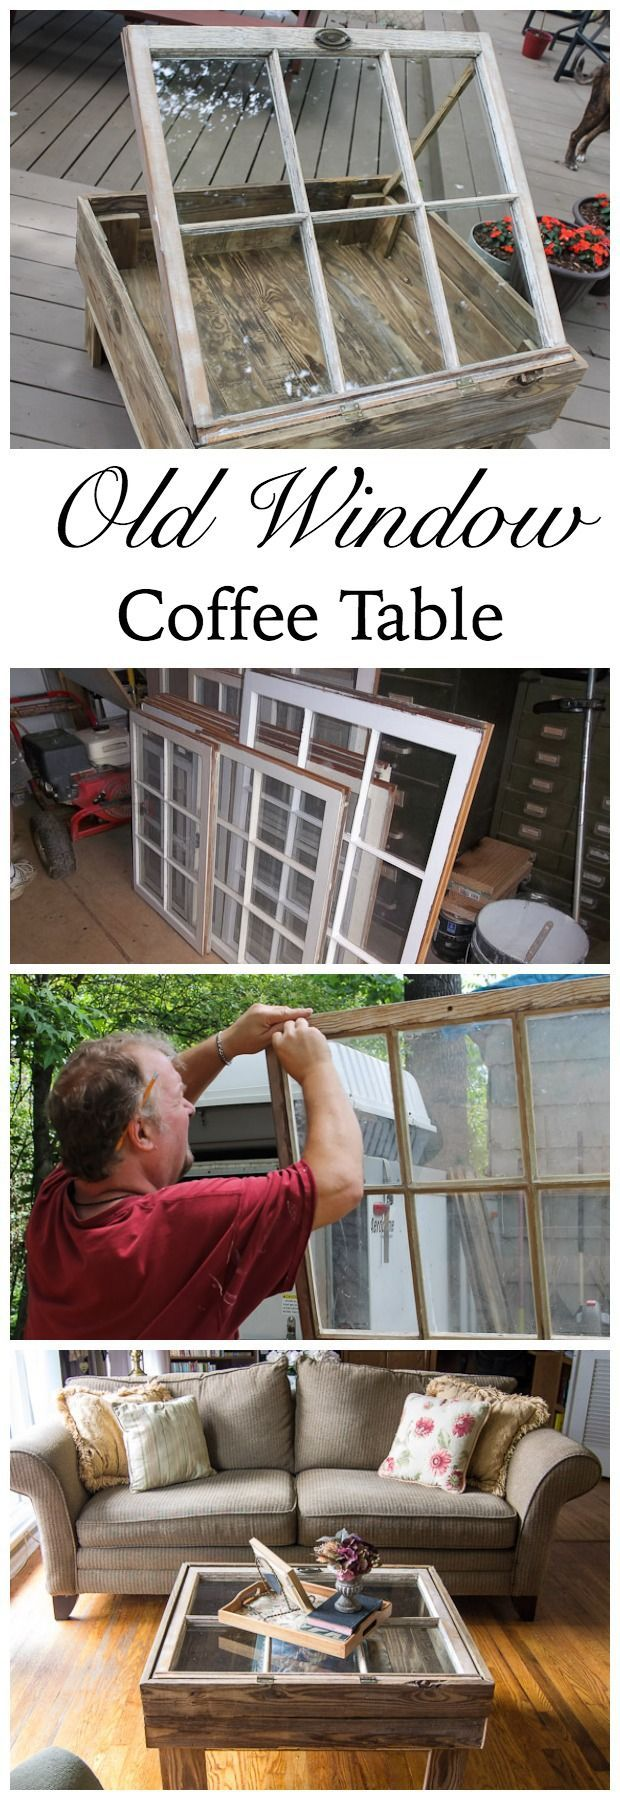 "<a href=""http://martysmusings.net/2012/05/unbelievable-window-table-or-my-husband.html"" target=""_blank""><strong>Old Window Coffee Table from Marty's Musings</strong></a>"